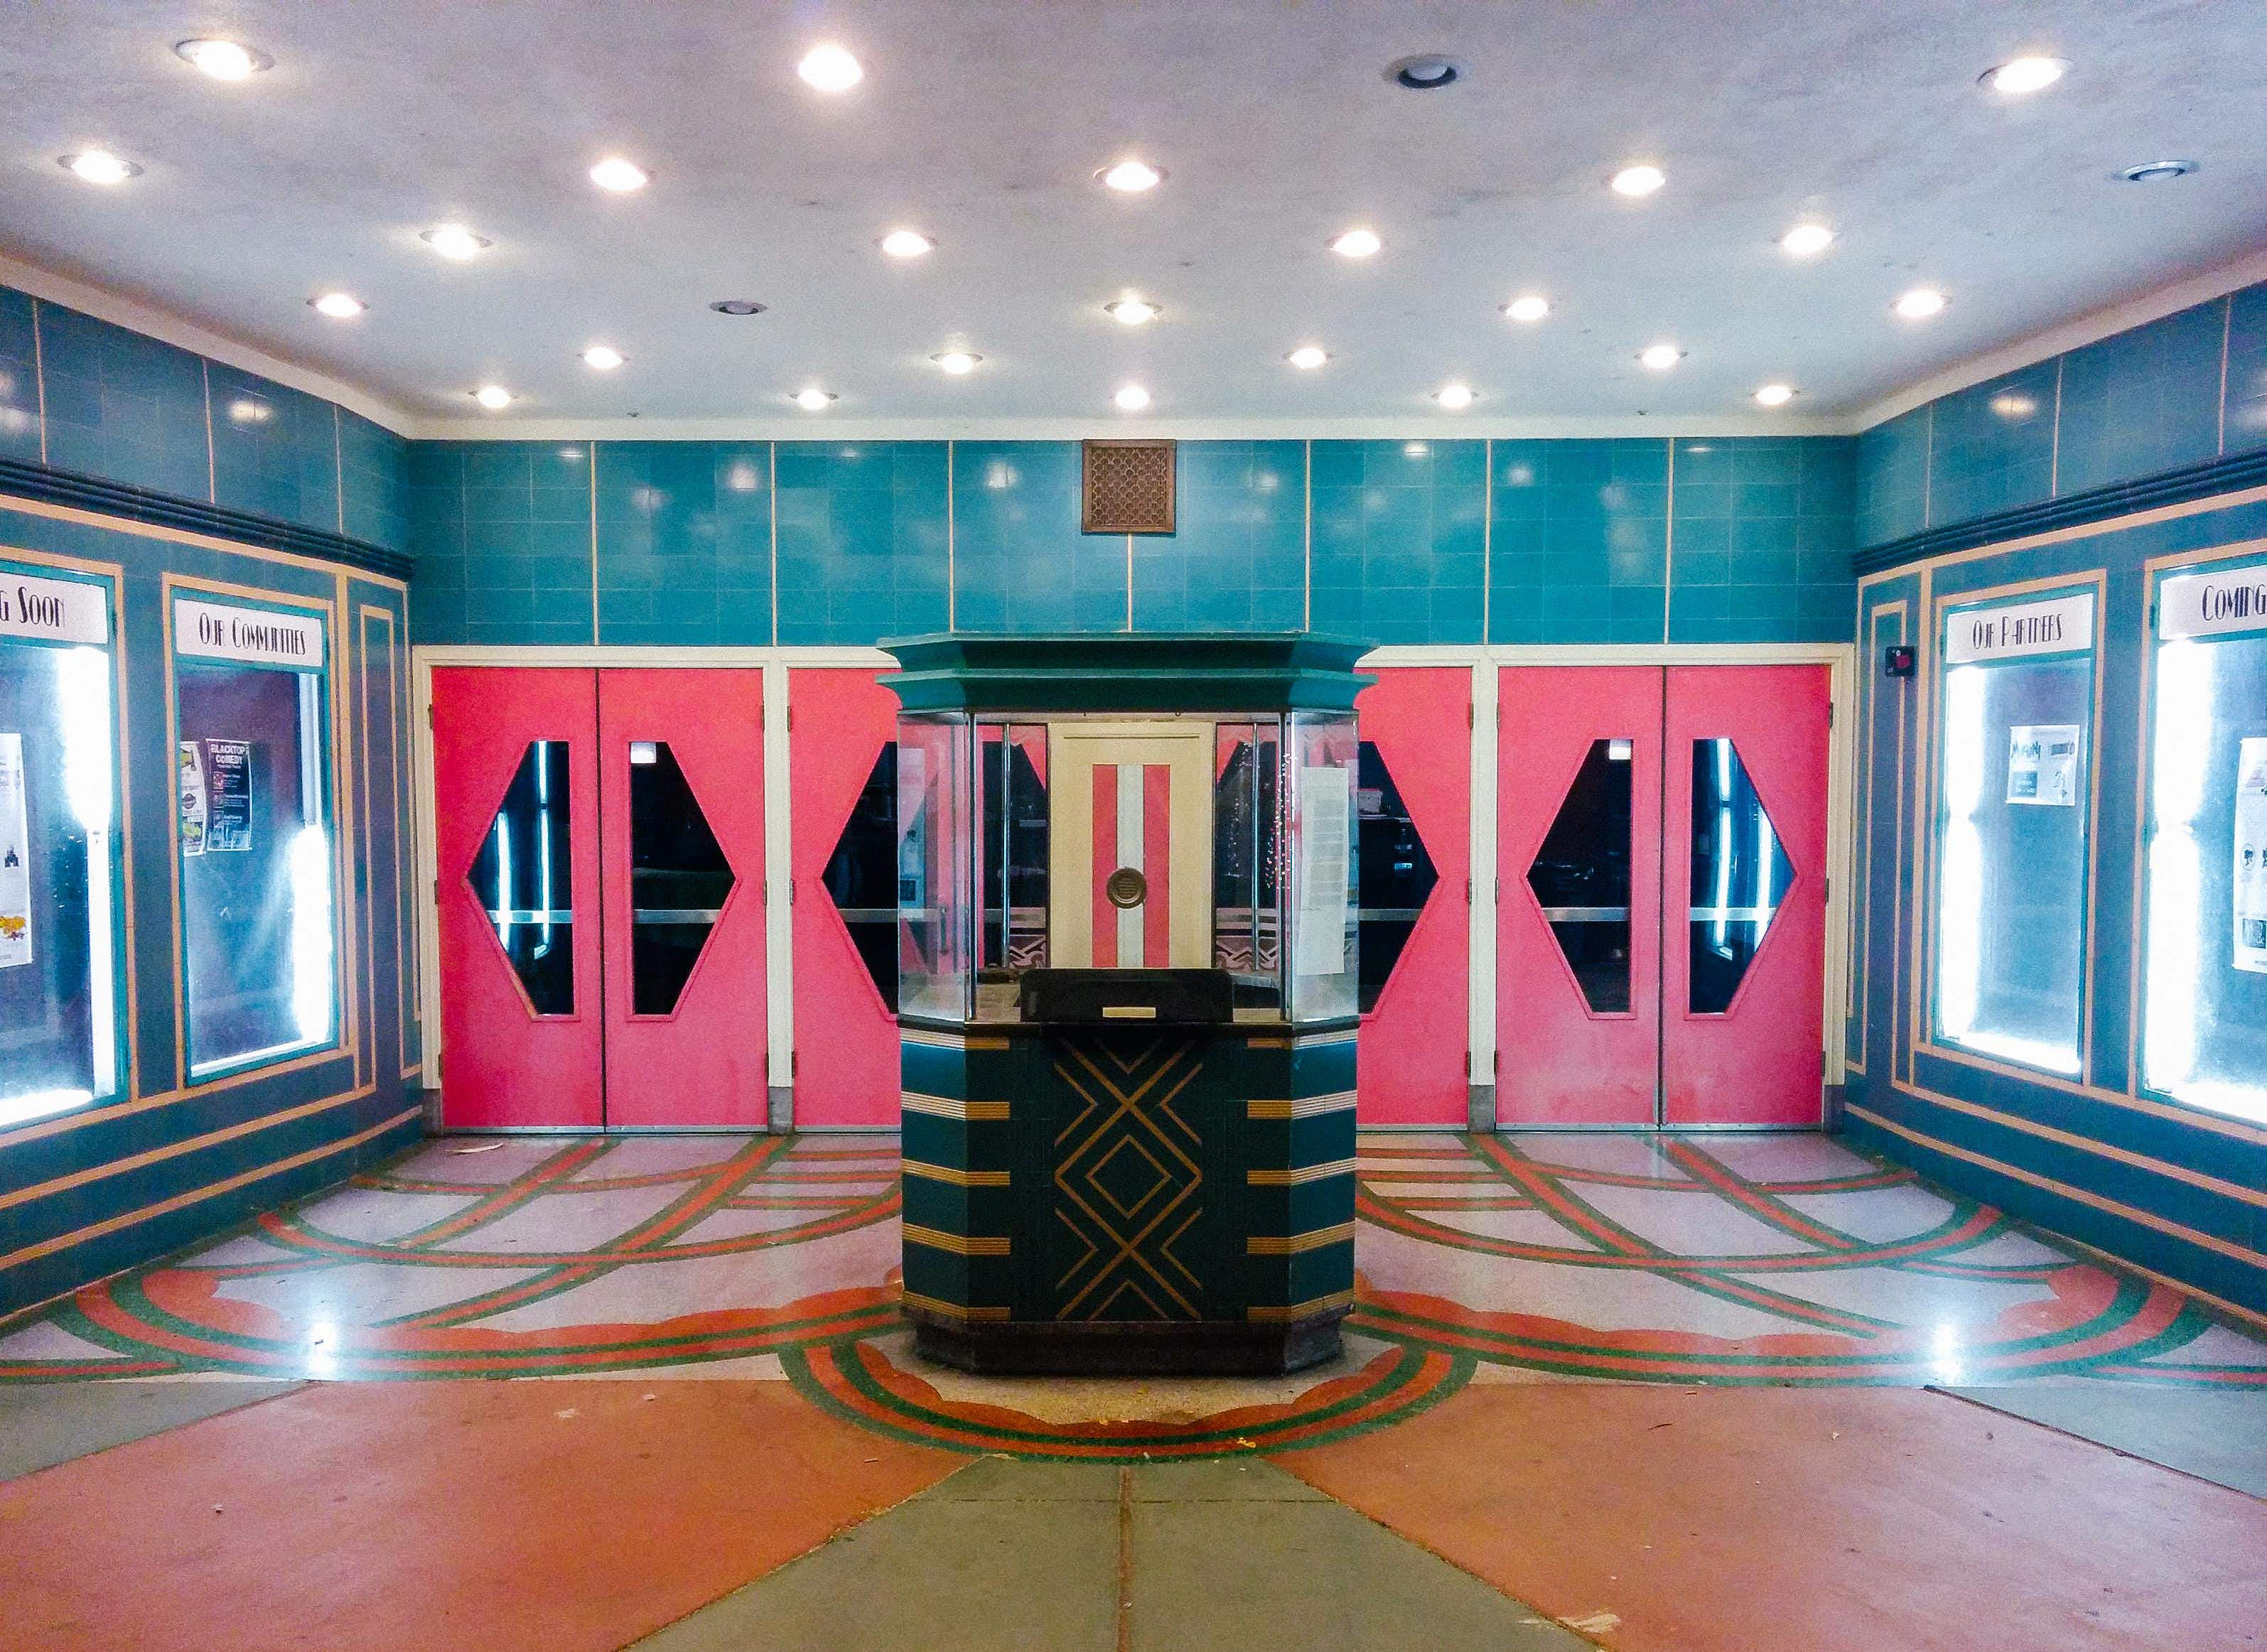 An online community is scouting the world for Wes Anderson movie locations